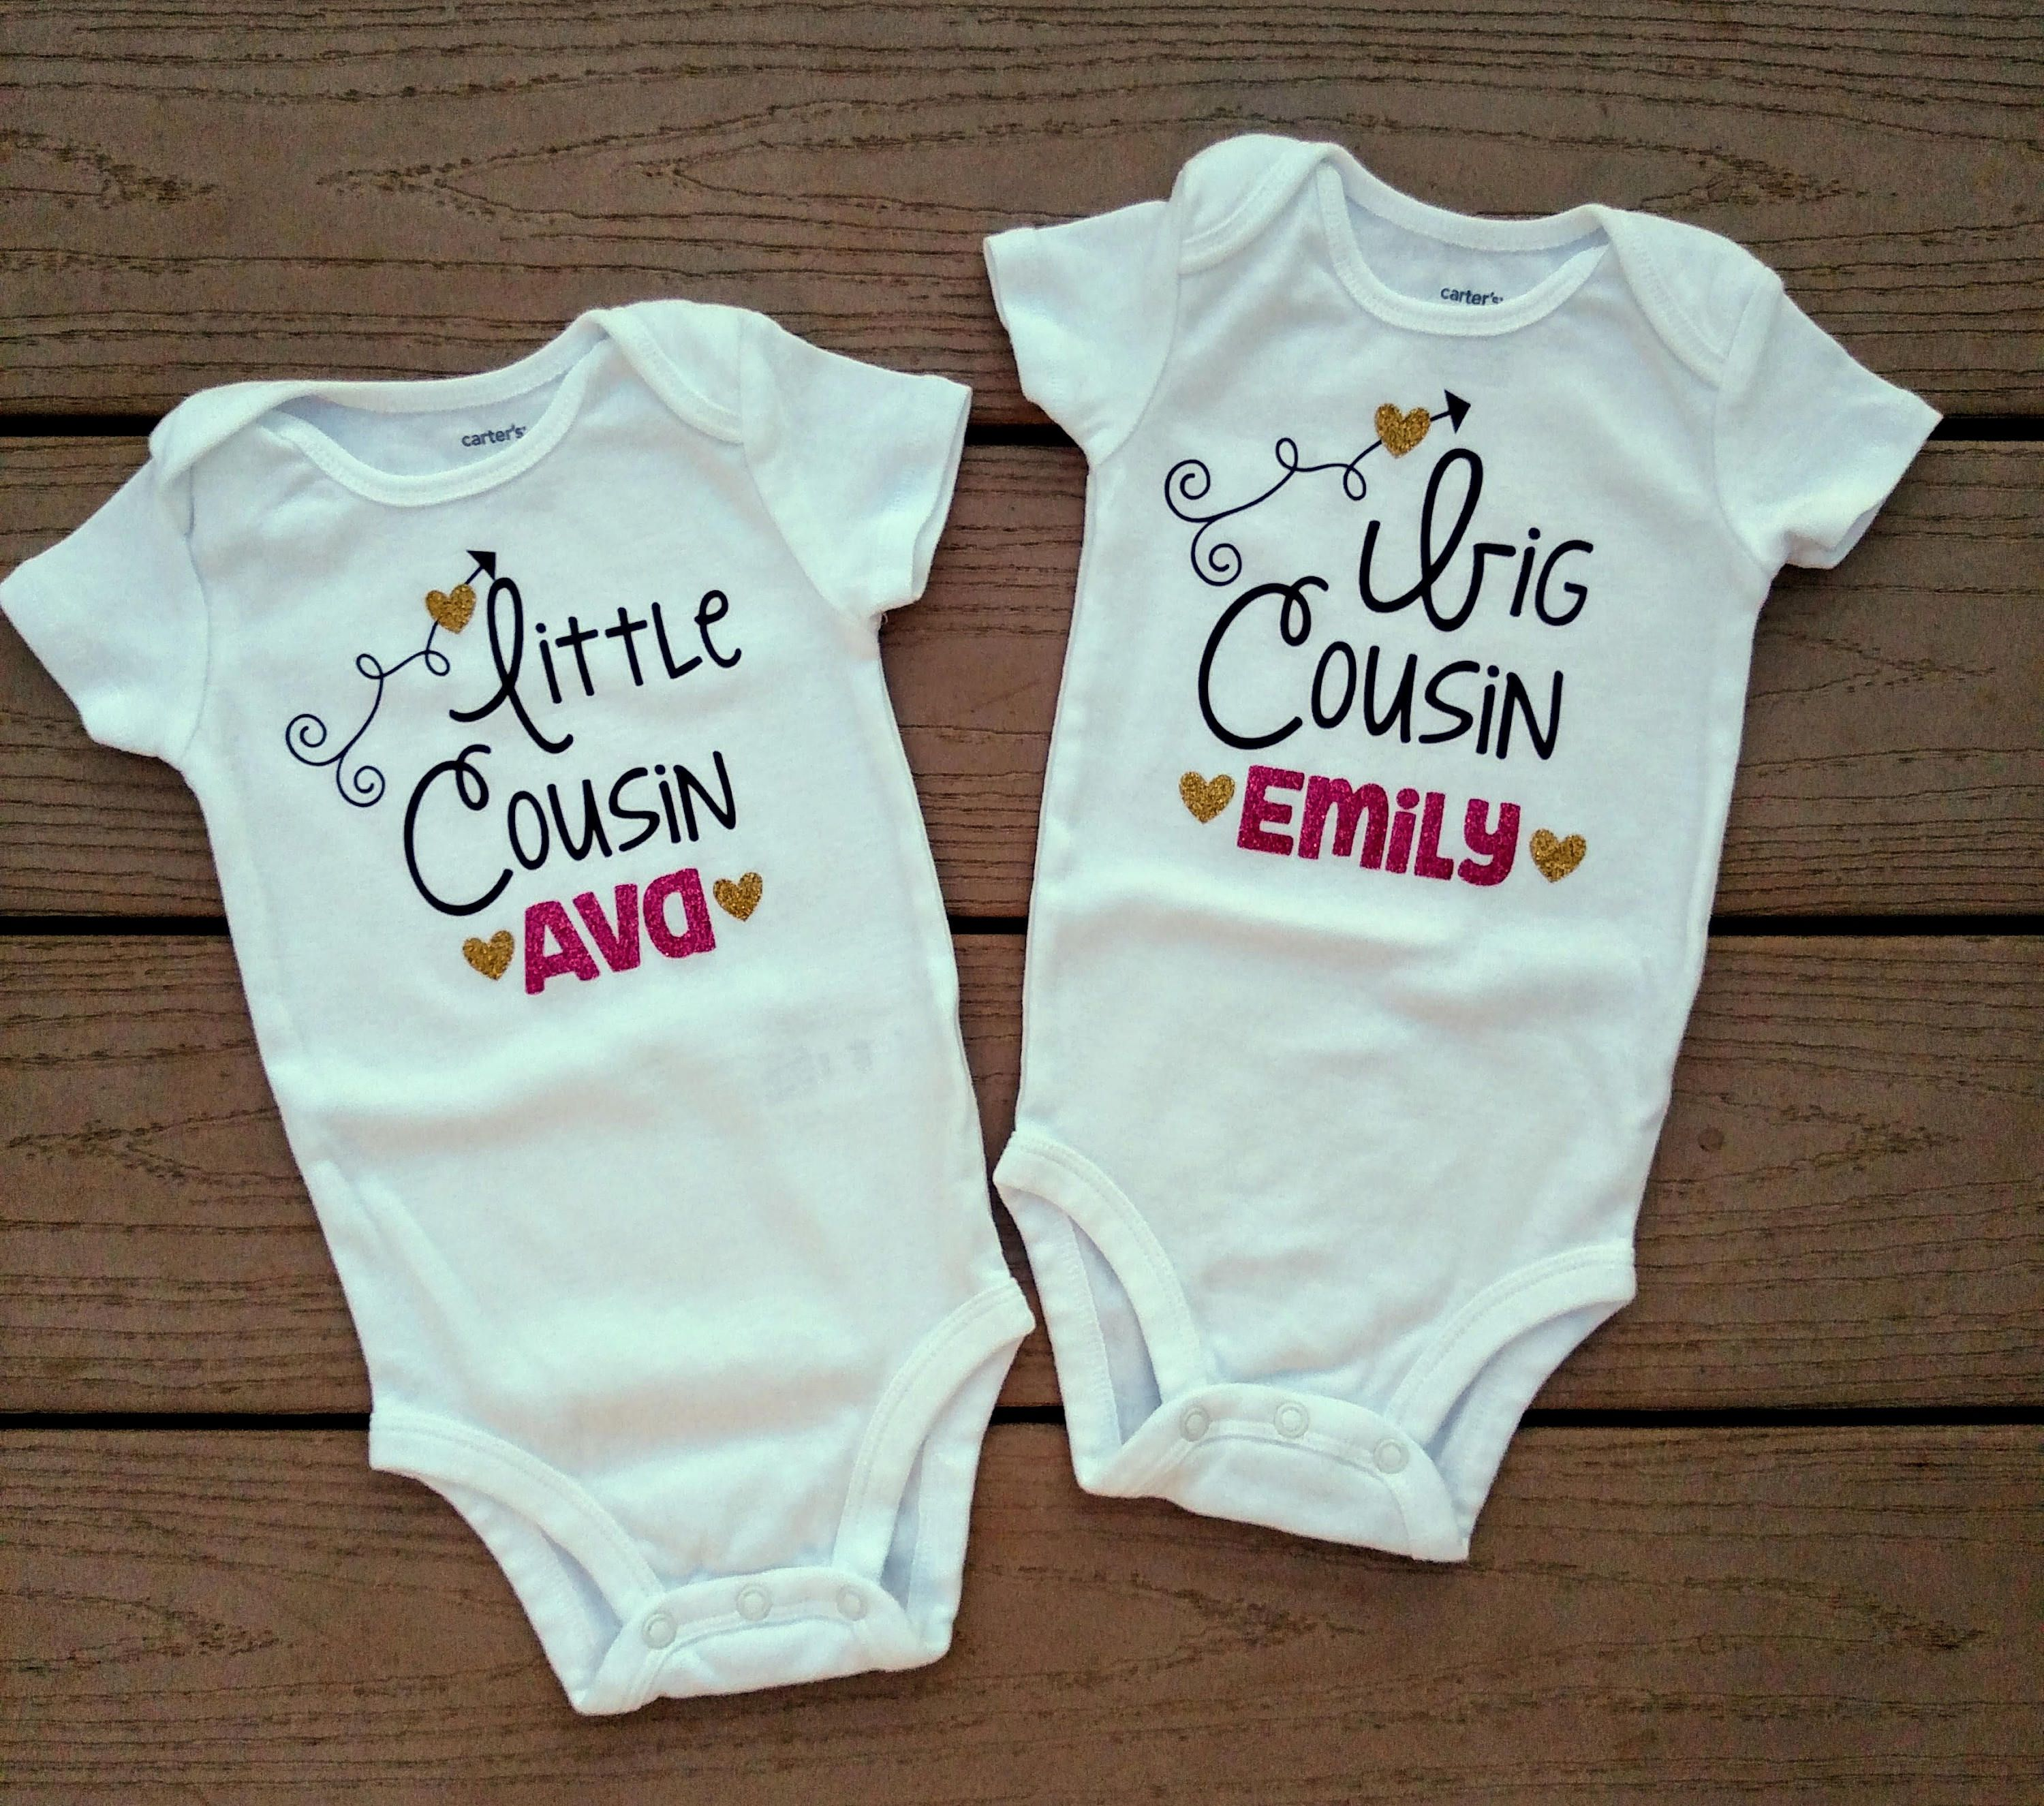 dcb05ba56 Big cousin little cousin onesies, personalized onesies, customizable onesies,  big brother little brother big sister little sister by LilBitsAndBigShots  on ...